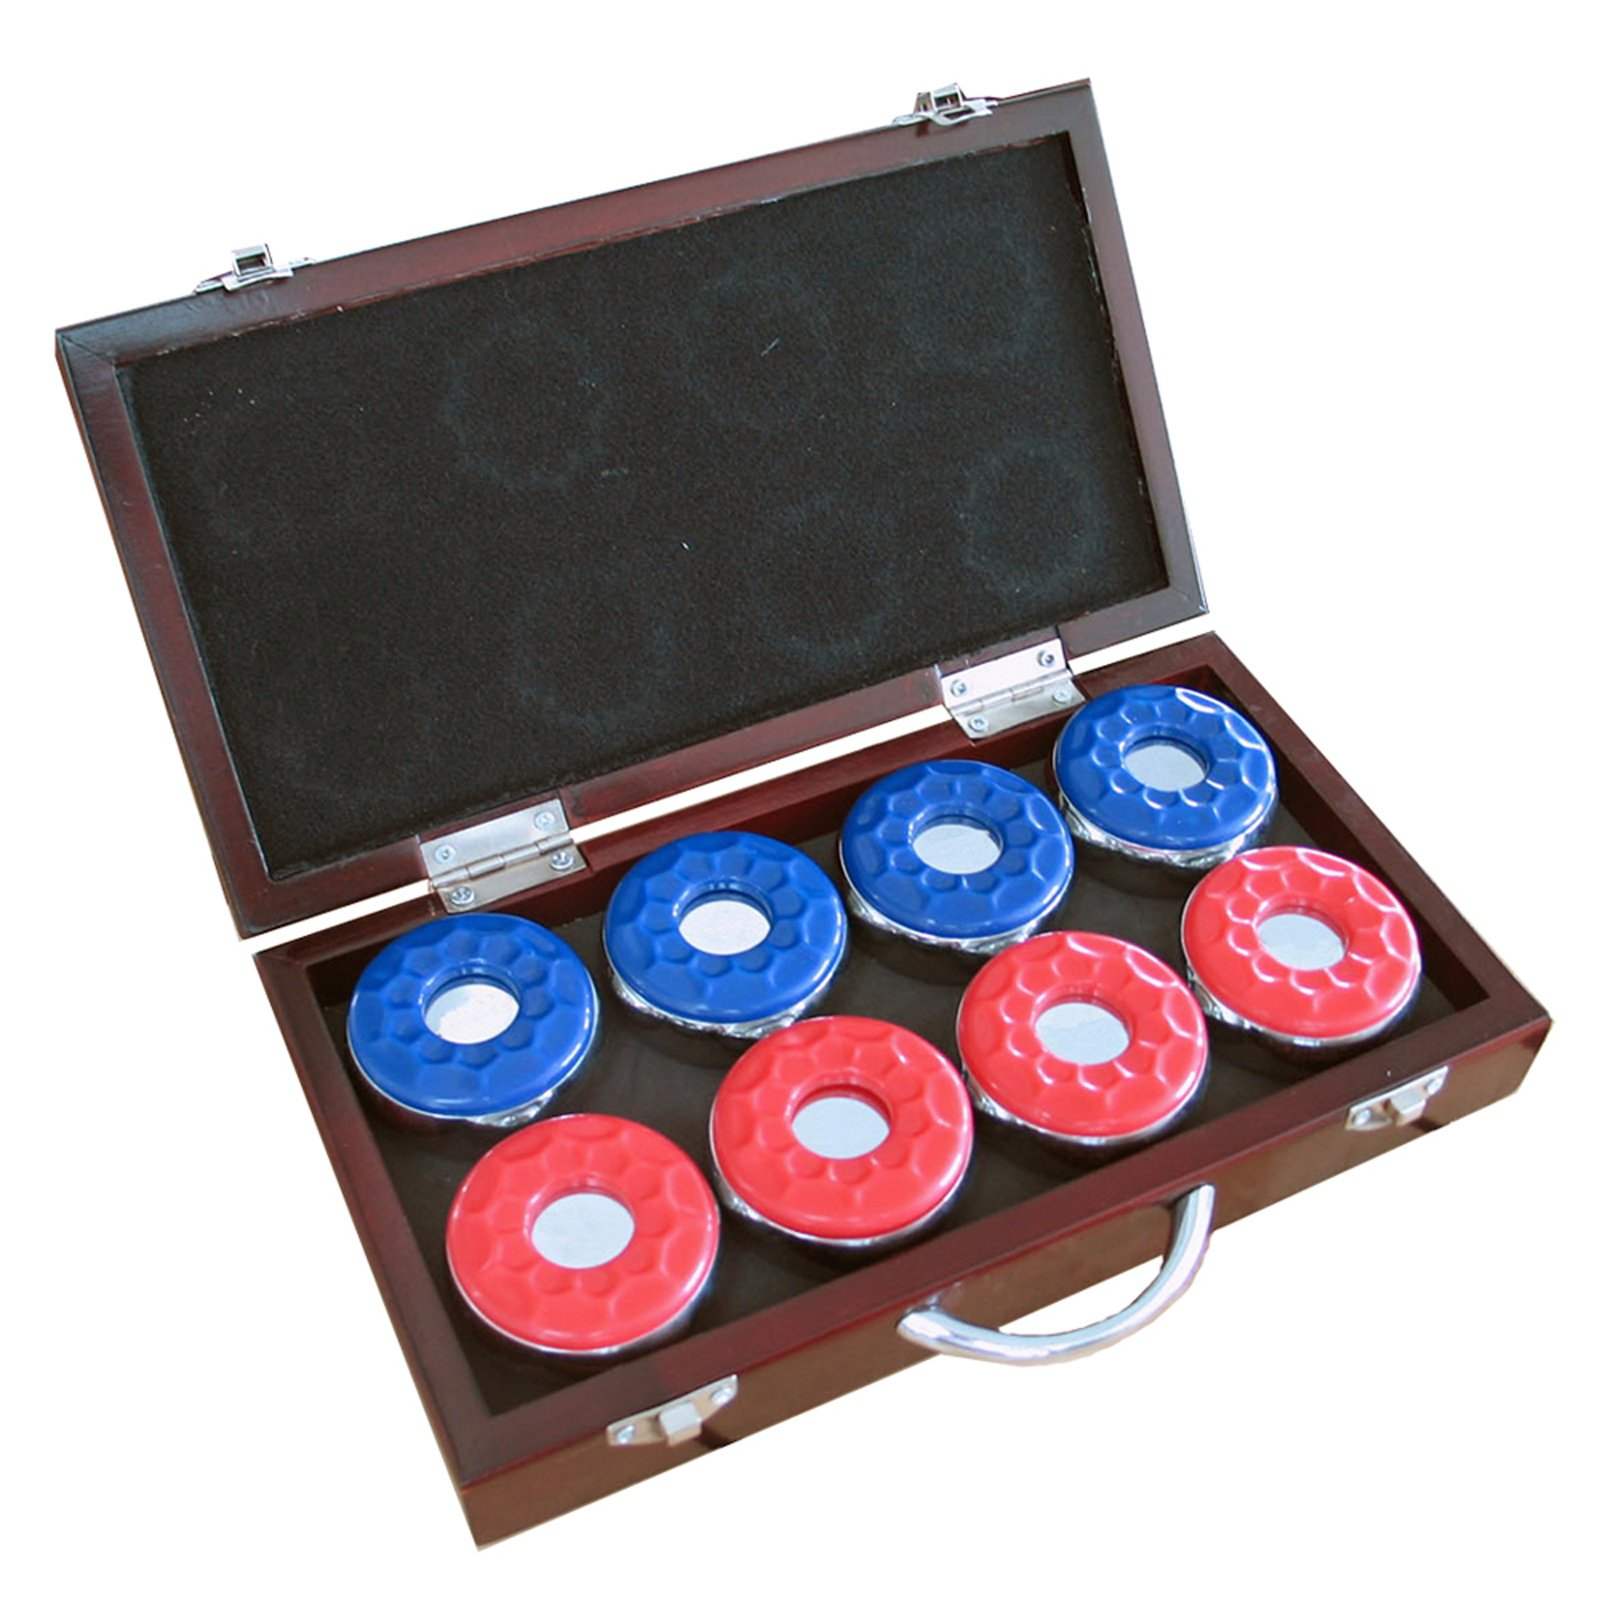 Hathaway Shuffleboard Pucks with Case (Set of 8), Dark Cherry Finish by Hathaway